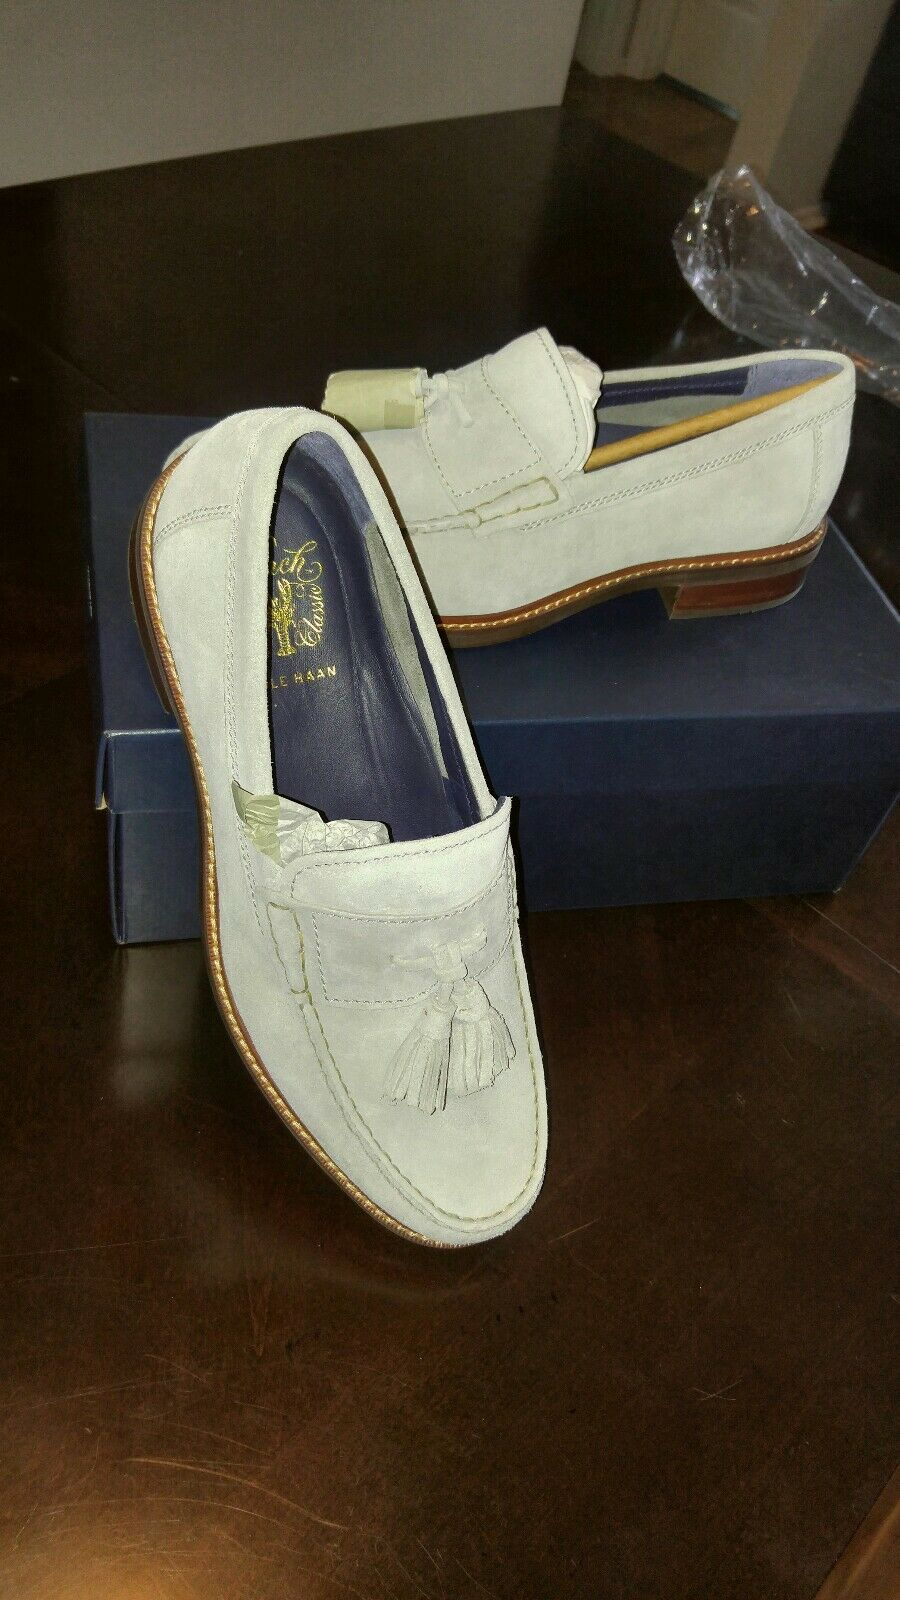 Cole haan loafers 10. Light grey